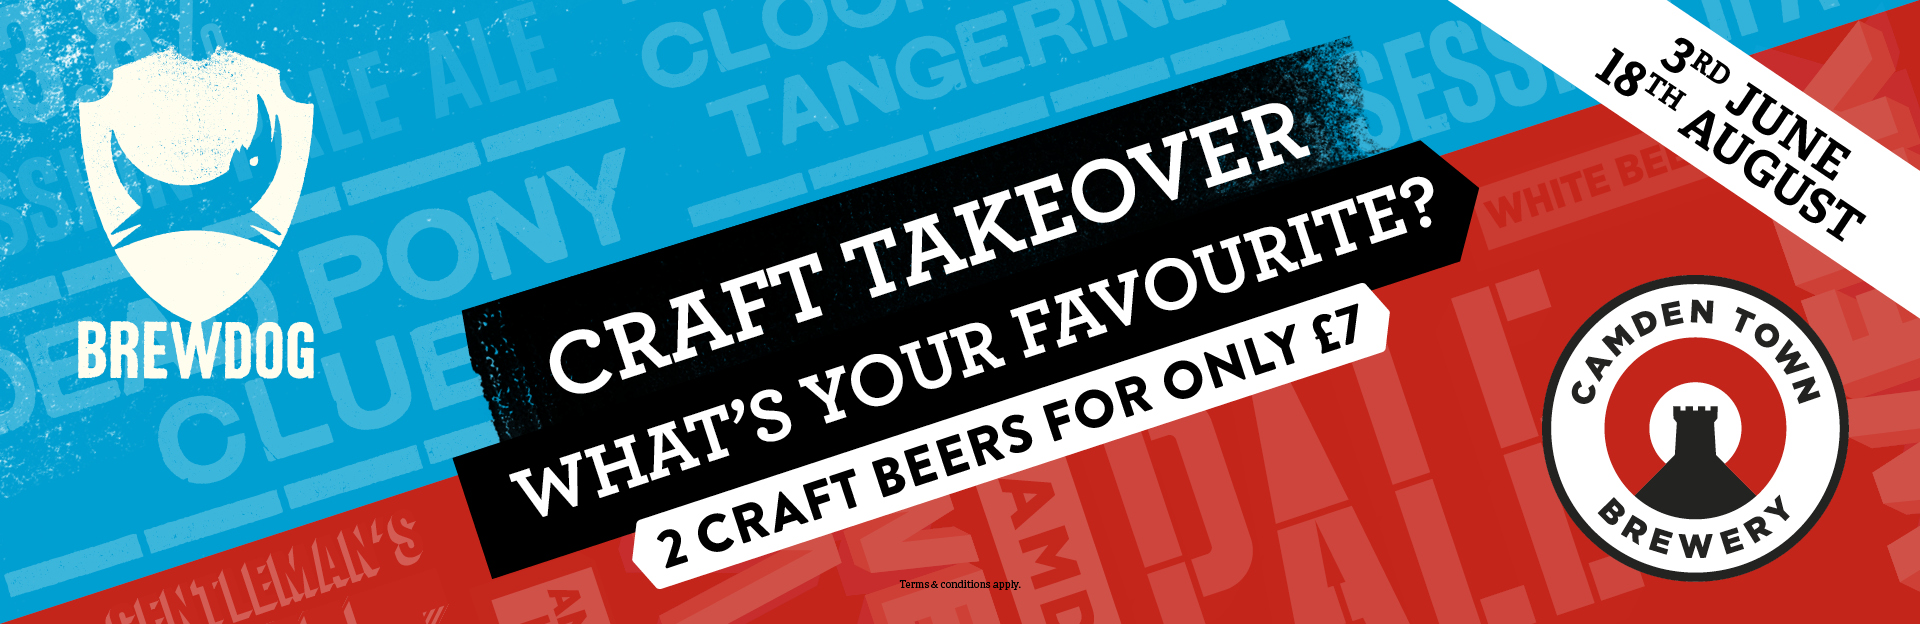 Craft Takeover at The White Horse